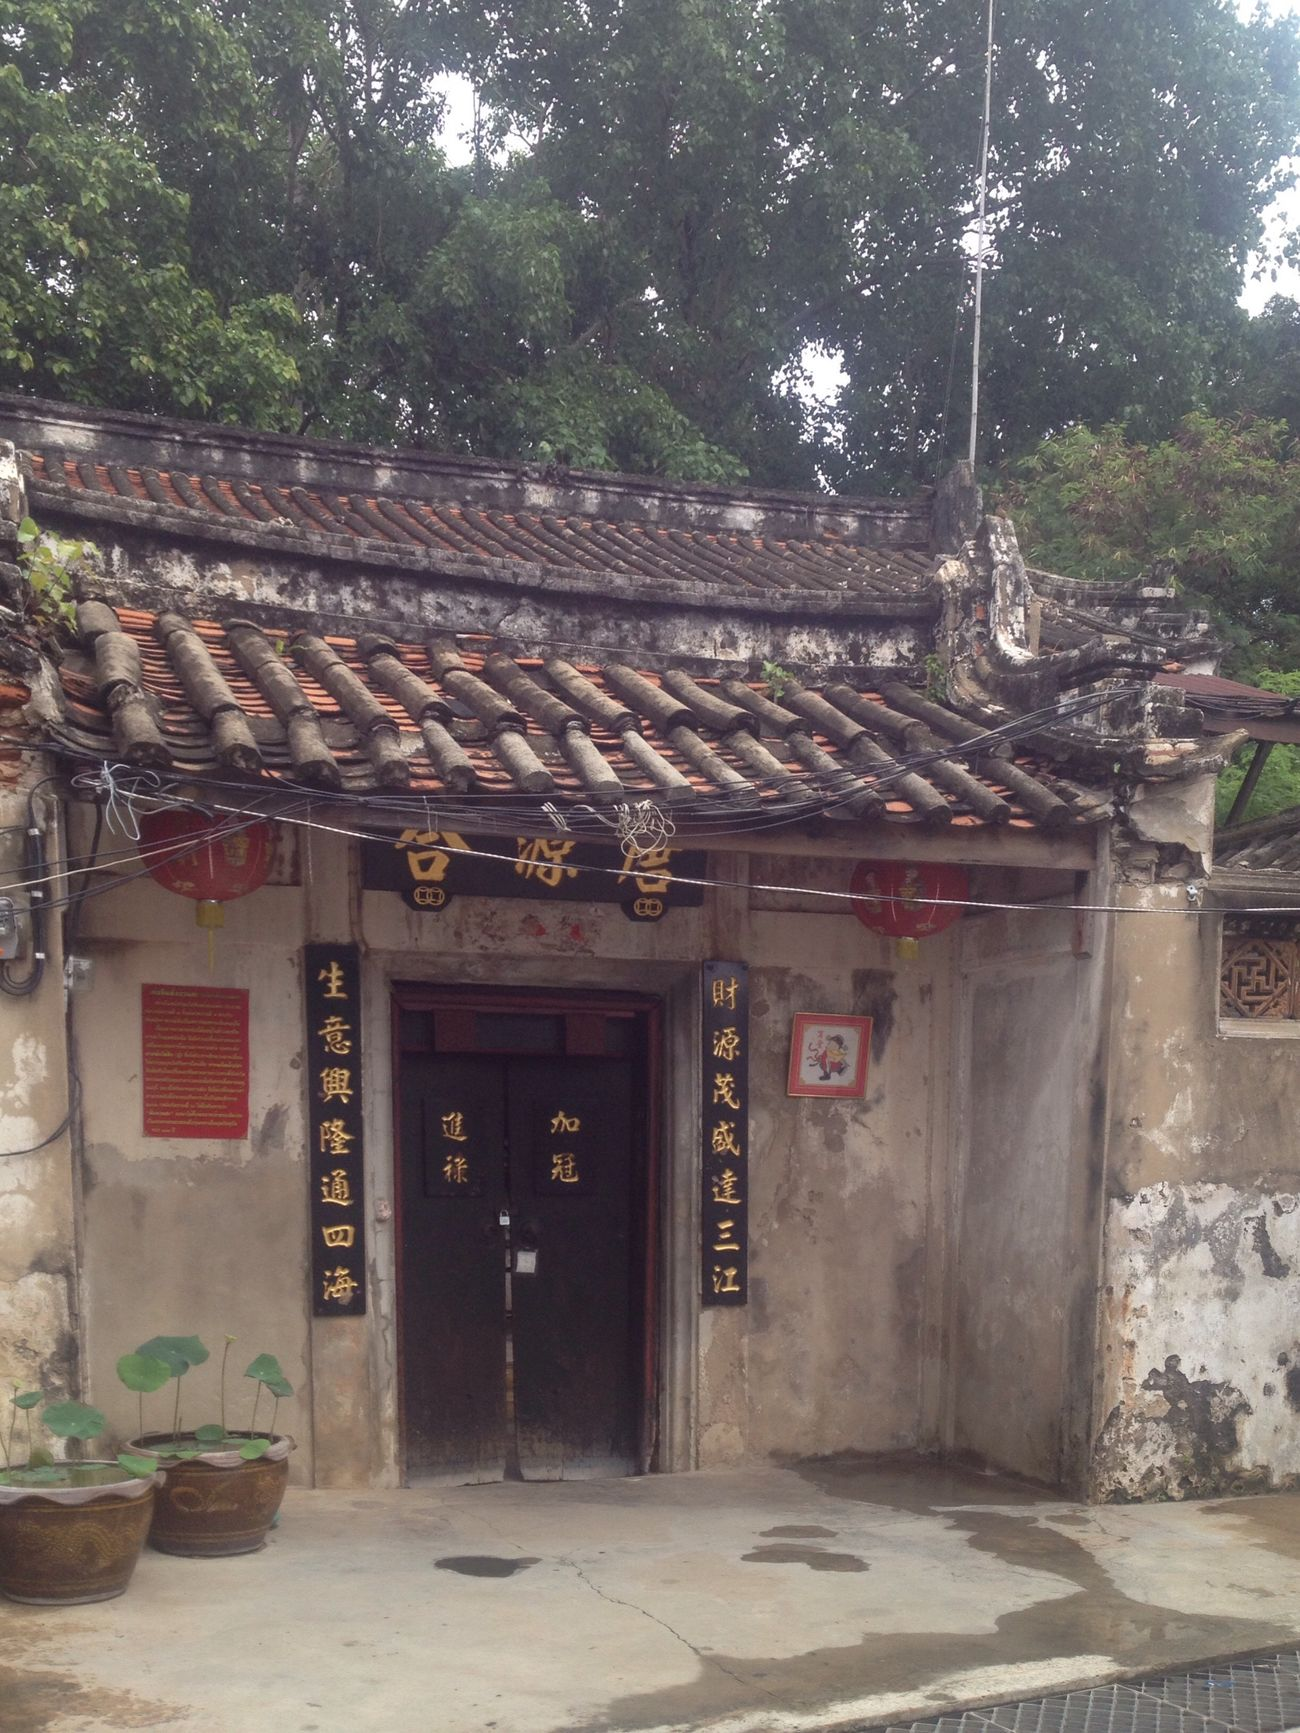 Entrance Architecture Door No People chinesestyle veryold Antique House